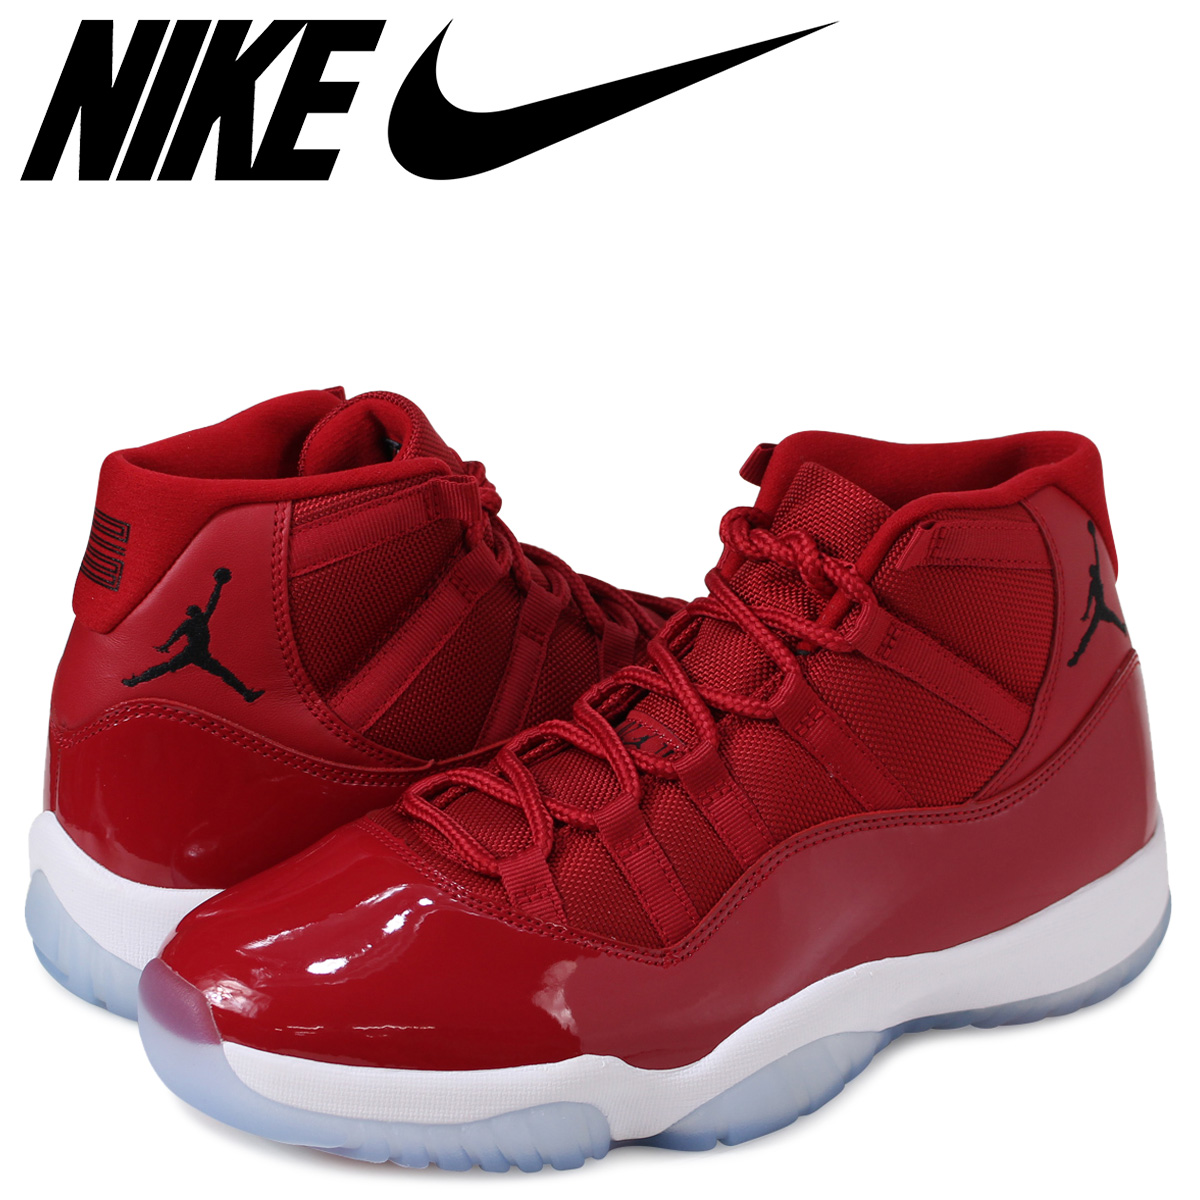 318172aa9d68 ALLSPORTS  NIKE AIR JORDAN 11 RETRO WIN LIKE 96 Nike Air Jordan 11 ...